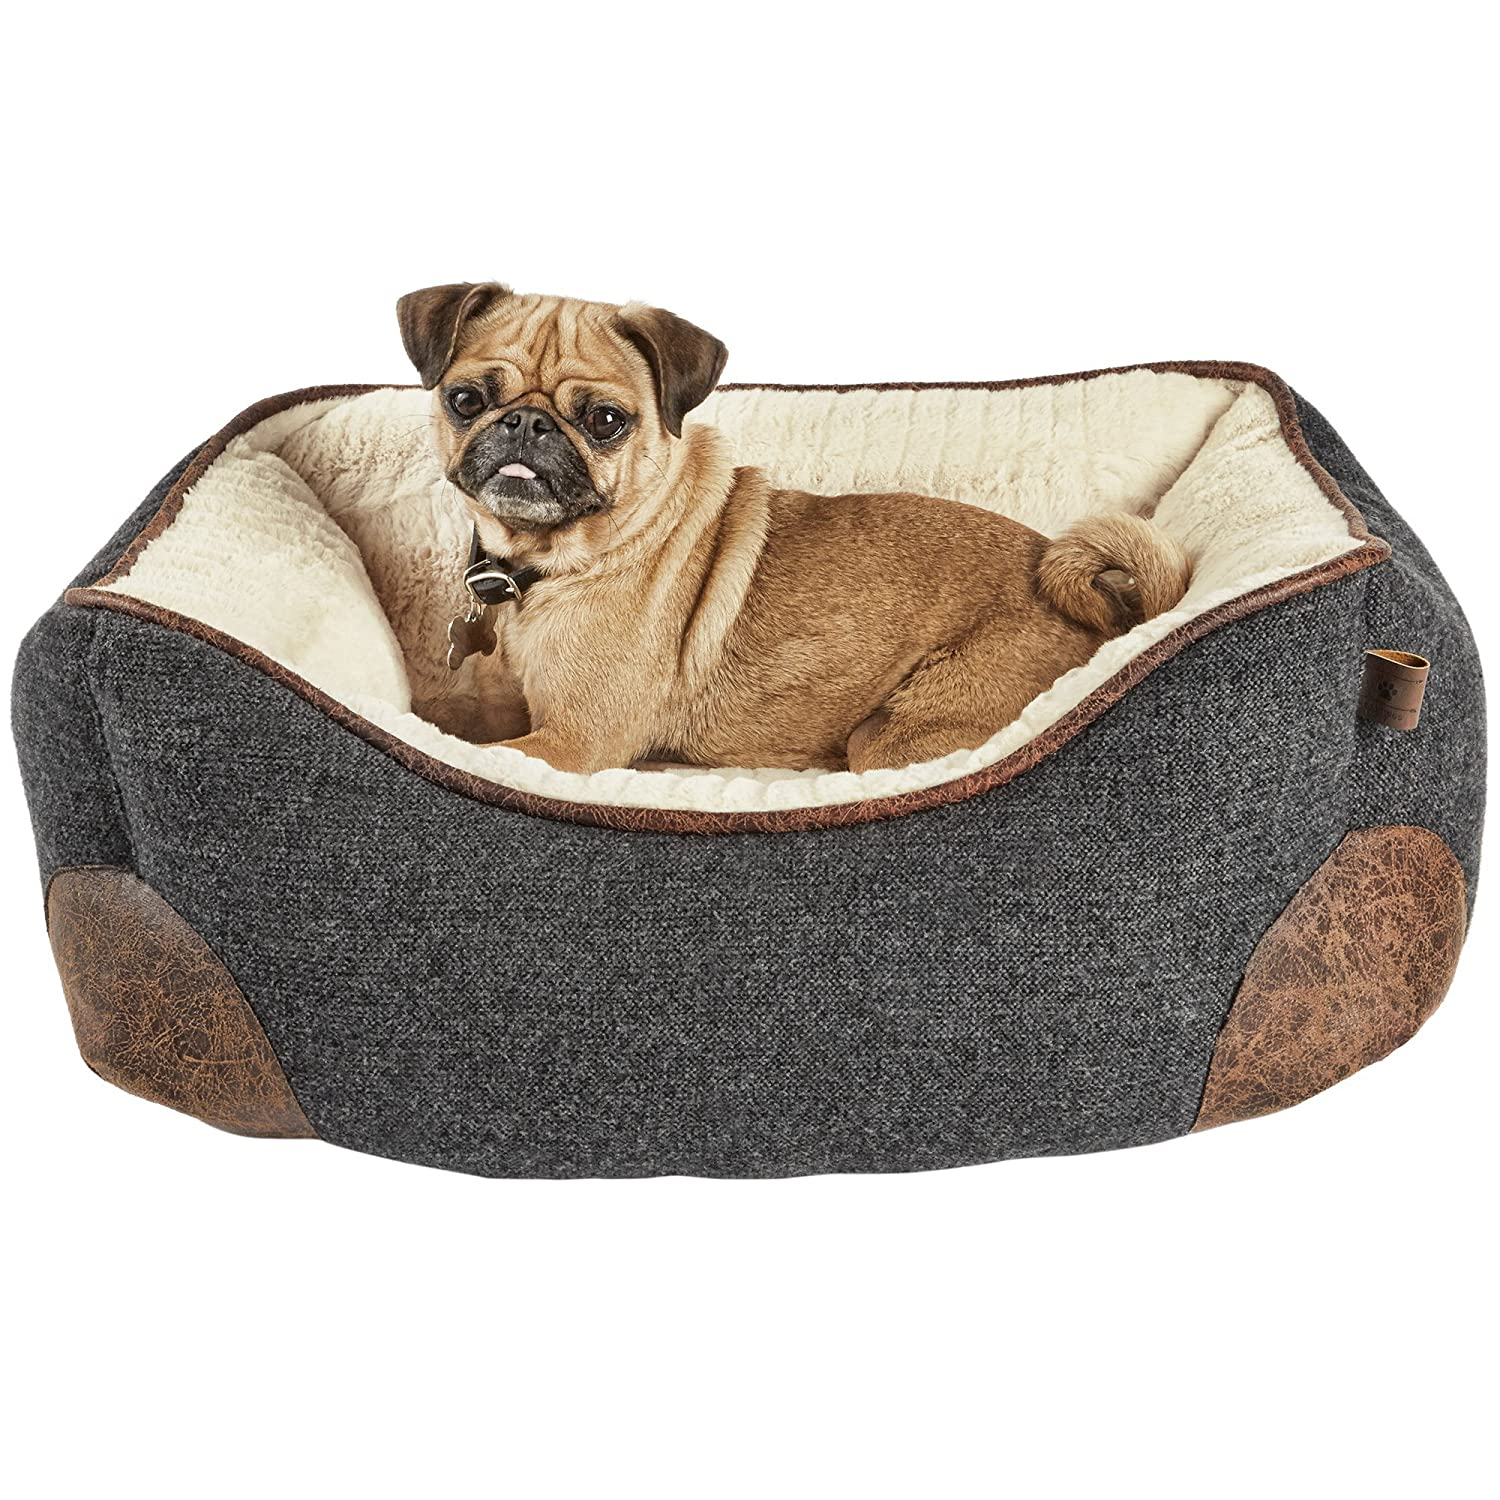 Paws Purrs Pet Bed with Storage Drawer